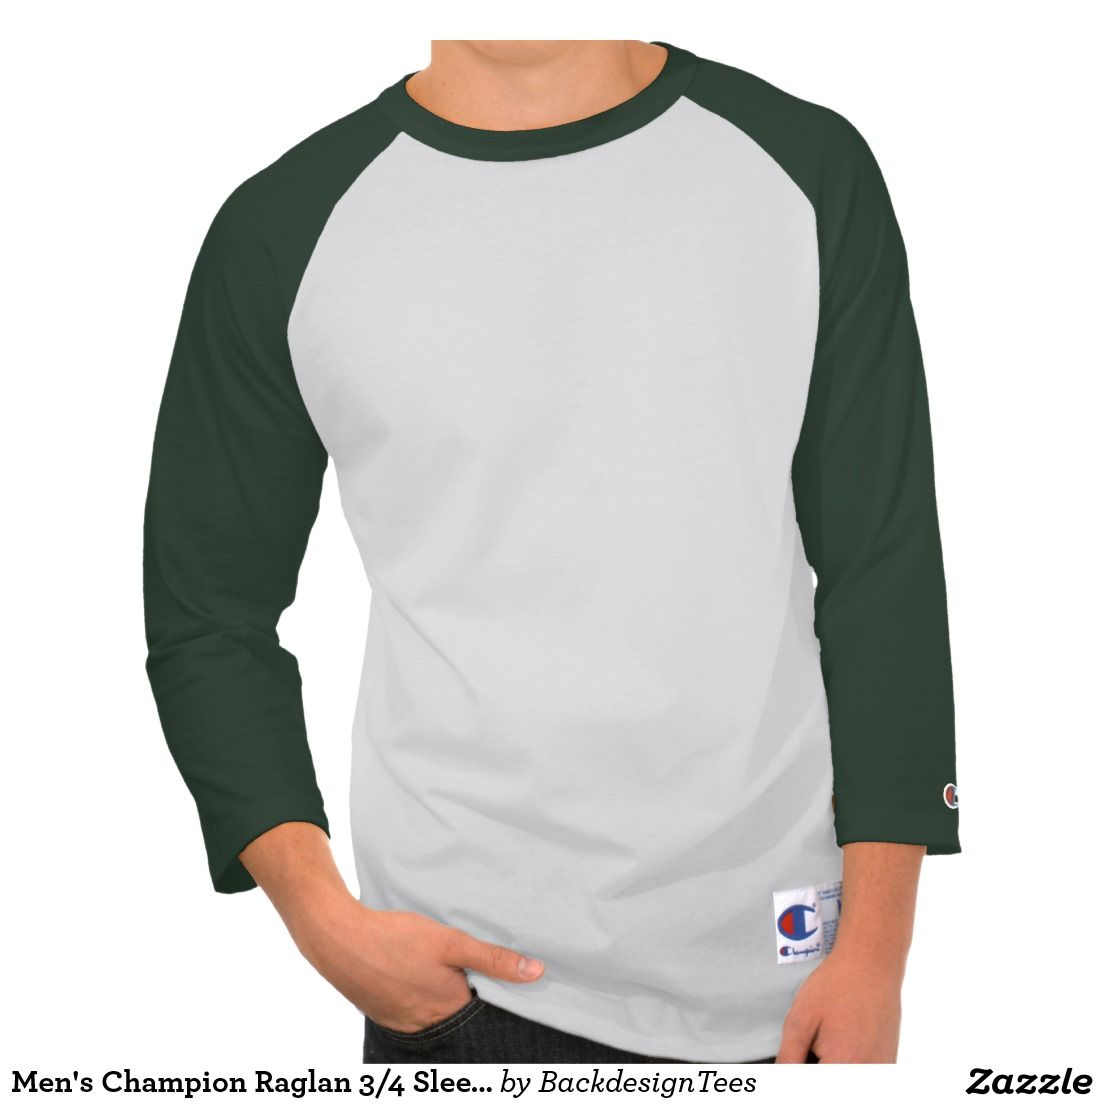 Zazzle t shirt design template - Men S Champion Raglan 3 4 Sleeve Shirt Green Dark